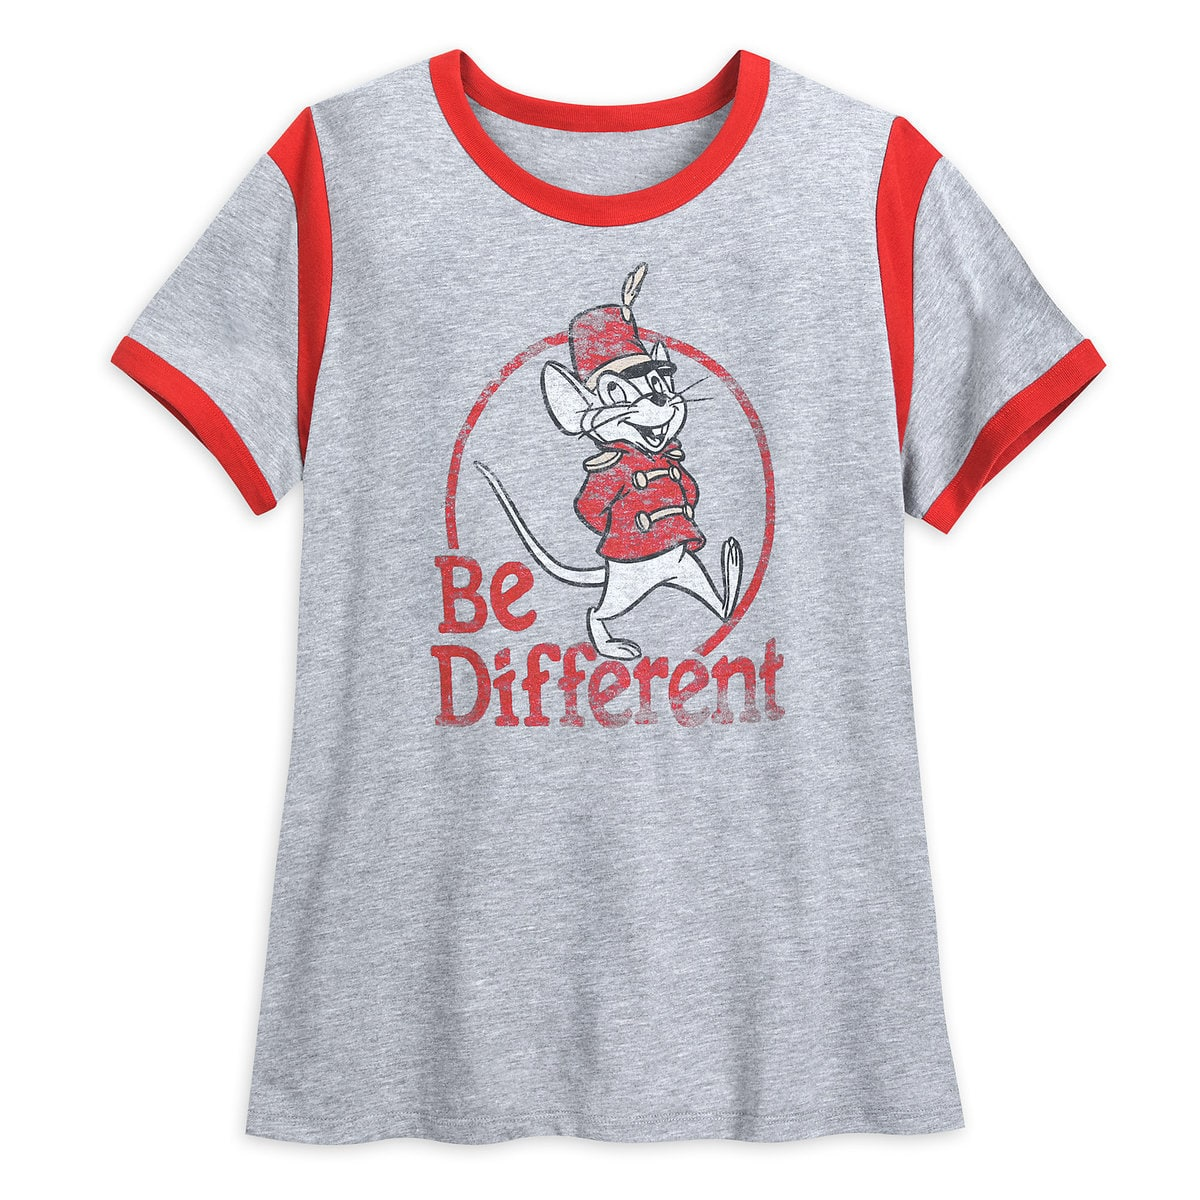 Disney Shirt for Women - Timothy Mouse - Be Different